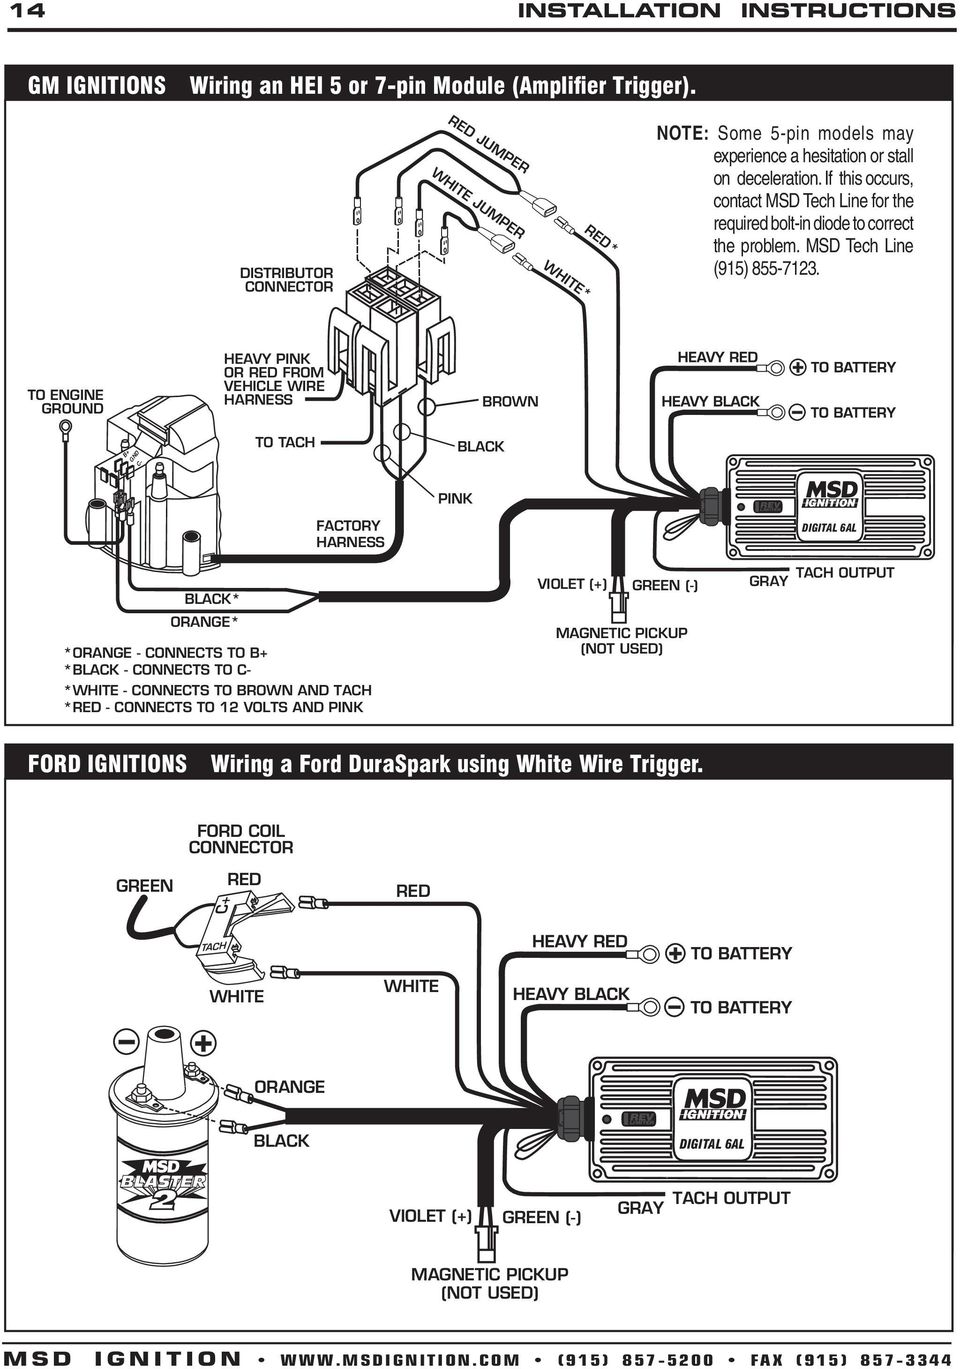 msd soft touch rev control wiring diagram. msd asy26434 soft touch hei rev  limiter 8727ct repl harness. msd 8728 soft touch rev control installation  user manual. msd 8738 soft touch rev control  2002-acura-tl-radio.info